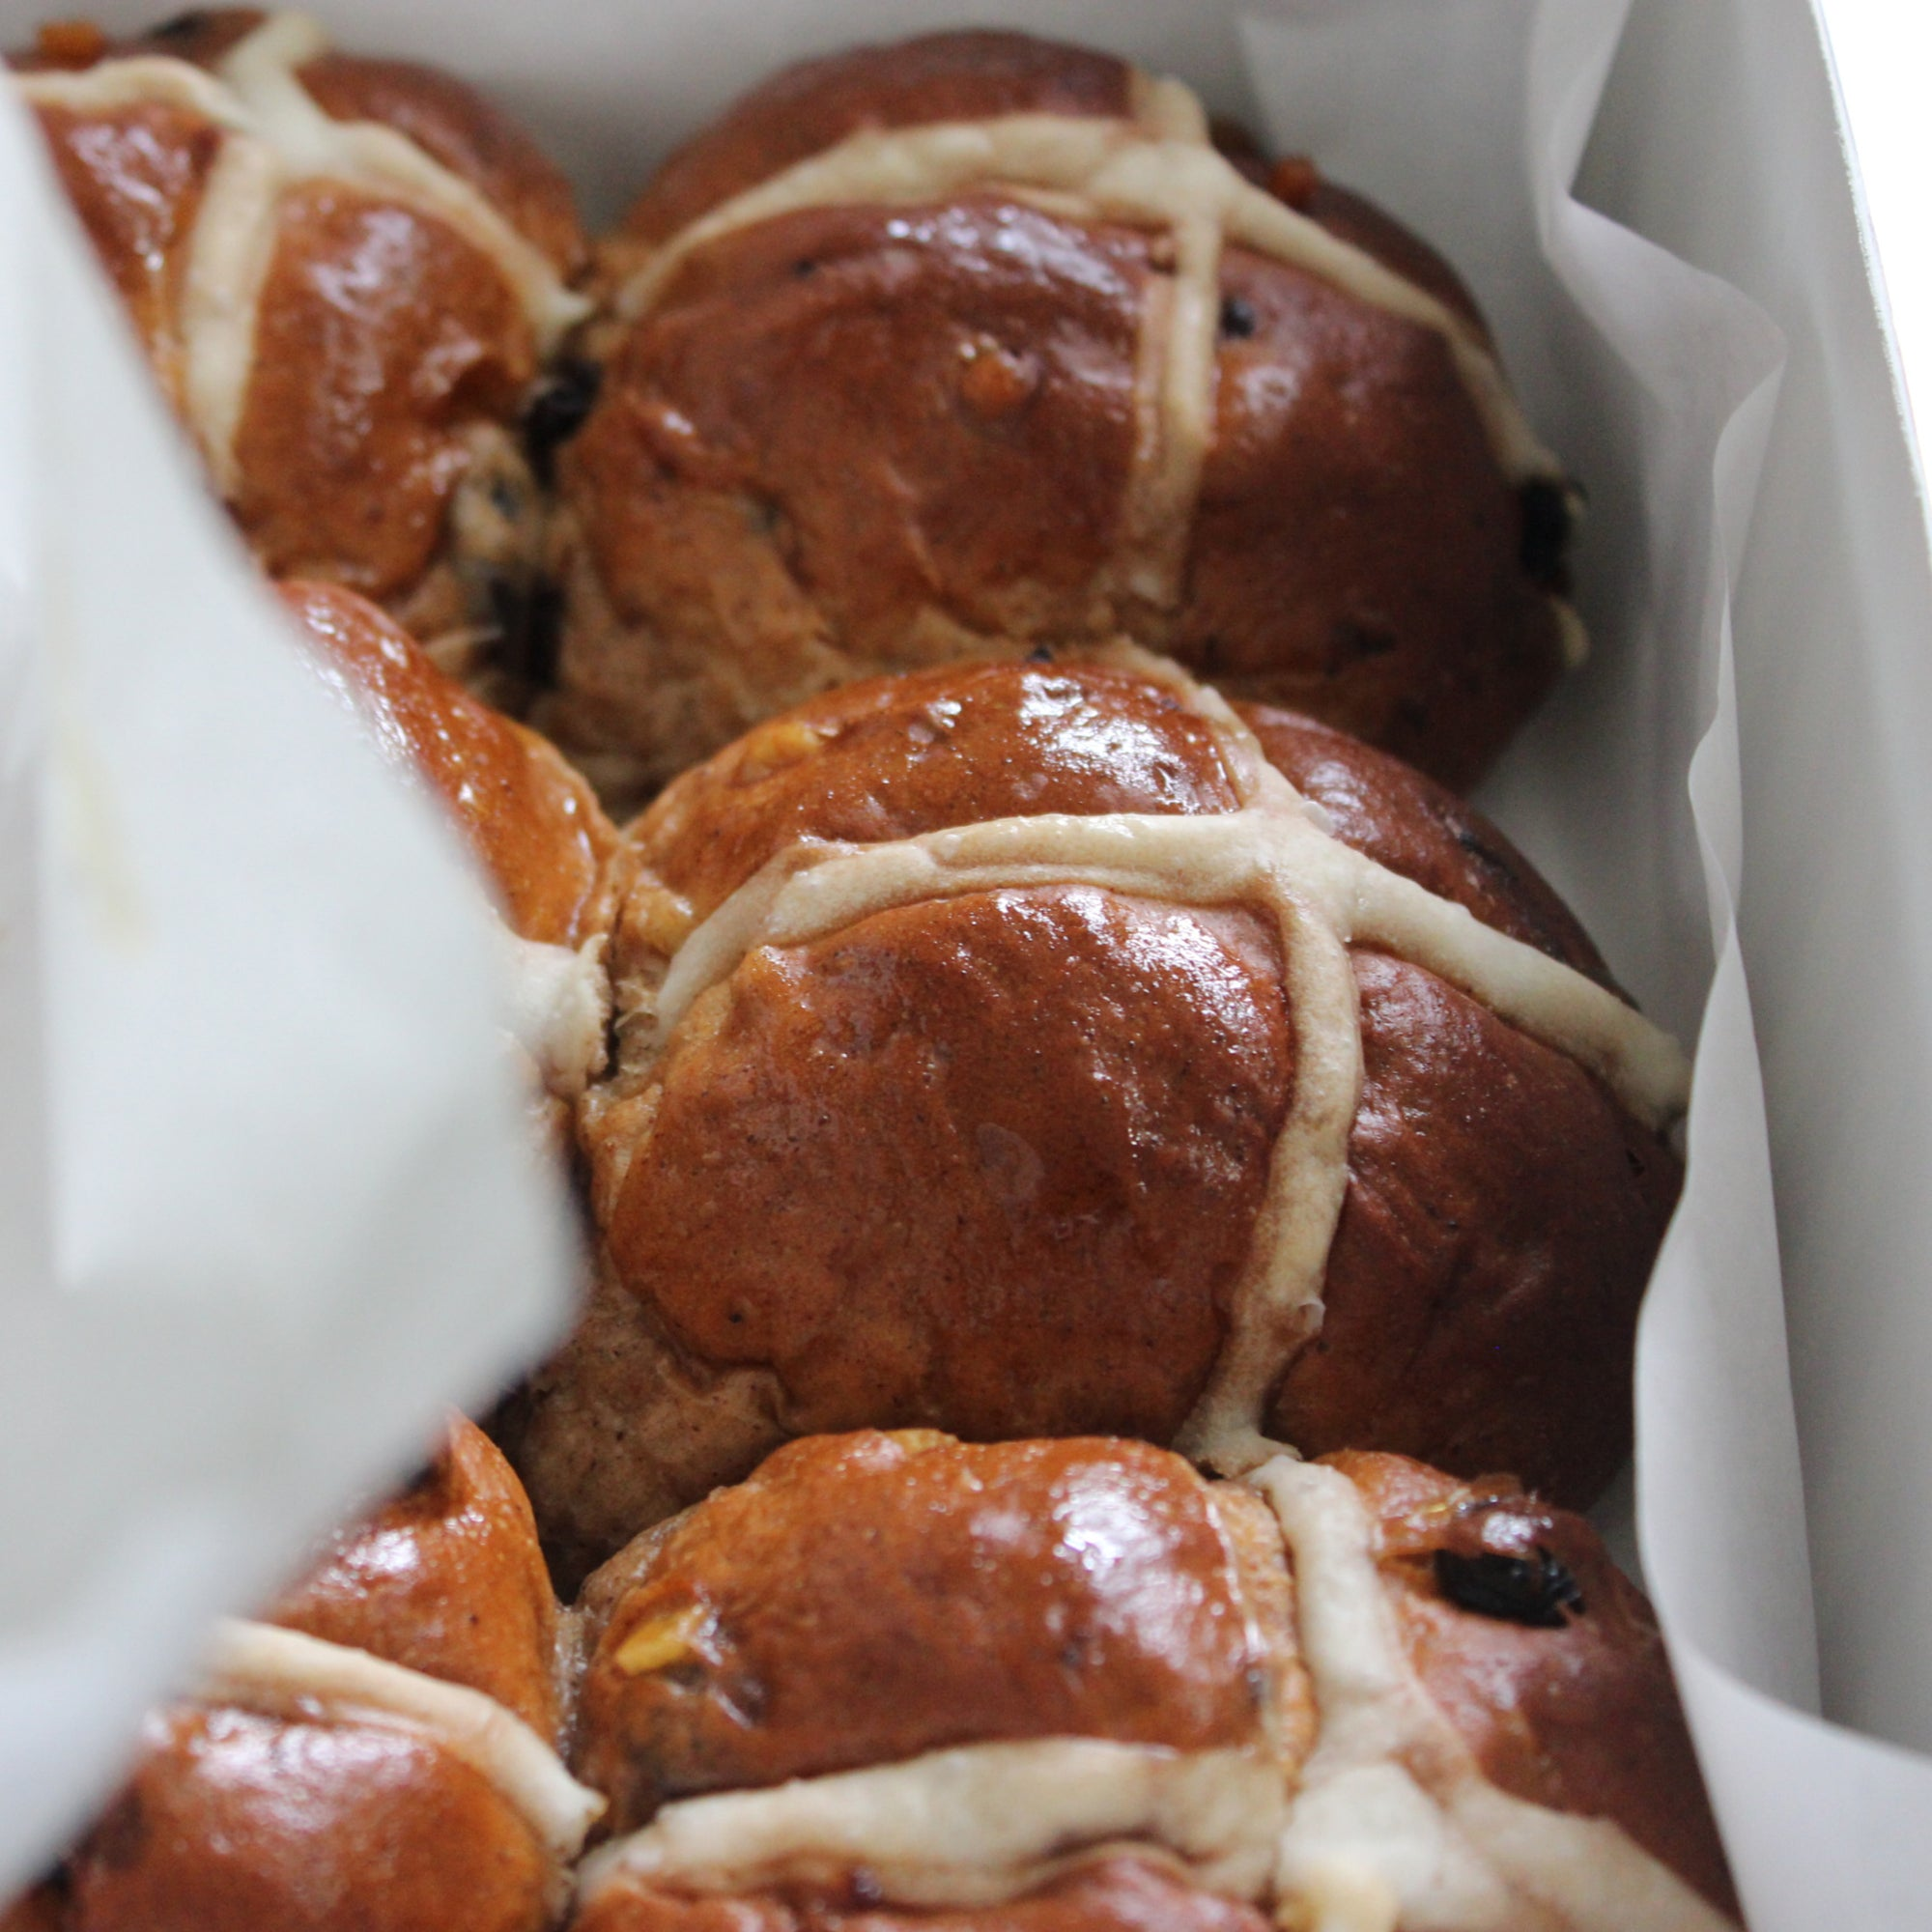 Hot Cross Buns Launched